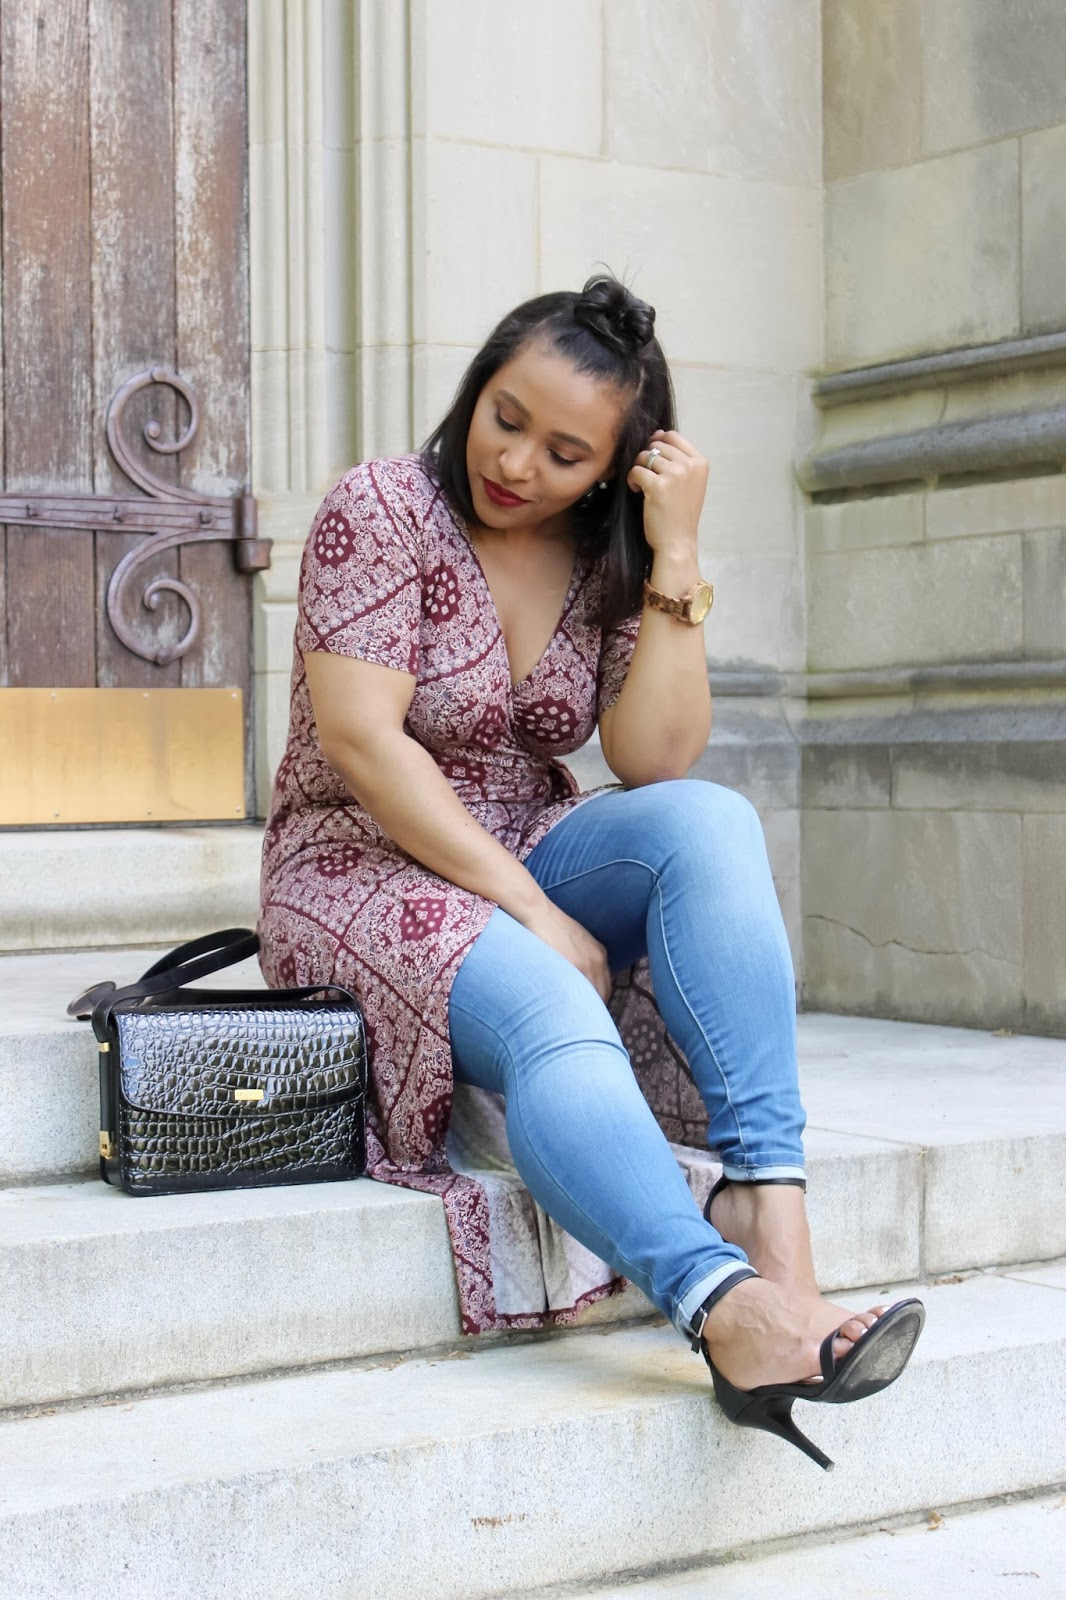 How To Find Your Personal Style On A Budget, wrap dress, forever21 wrap dress, printed wrap dress, top knot, jeans with a wrap dress, lifestyle blogger, how to shop, bargain shopper